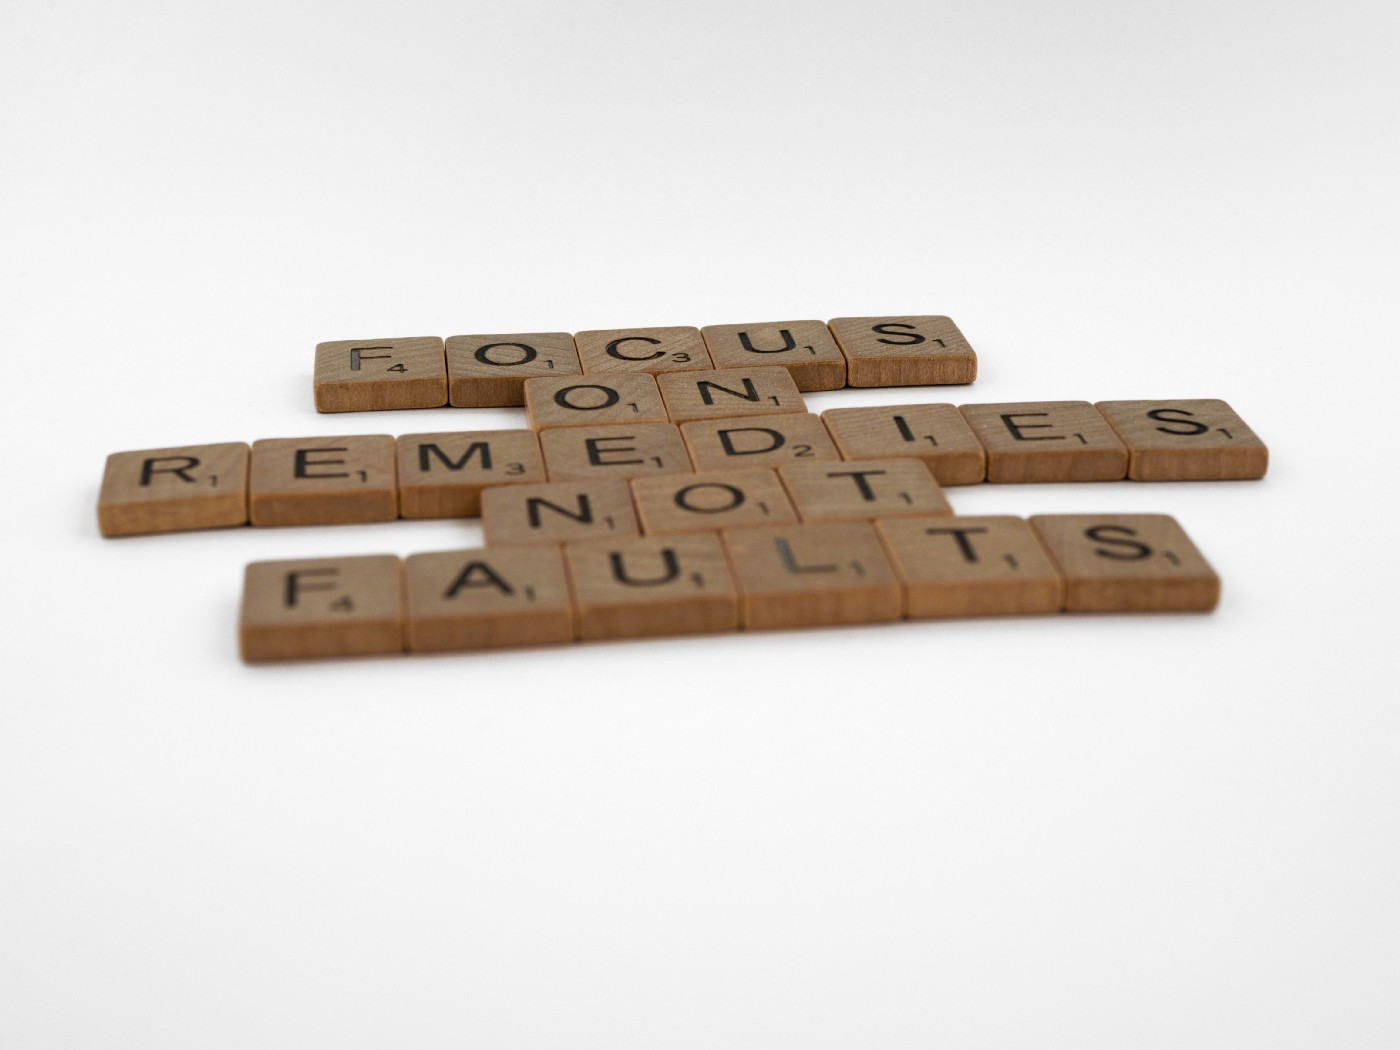 focus on remedies not faults in building blocks